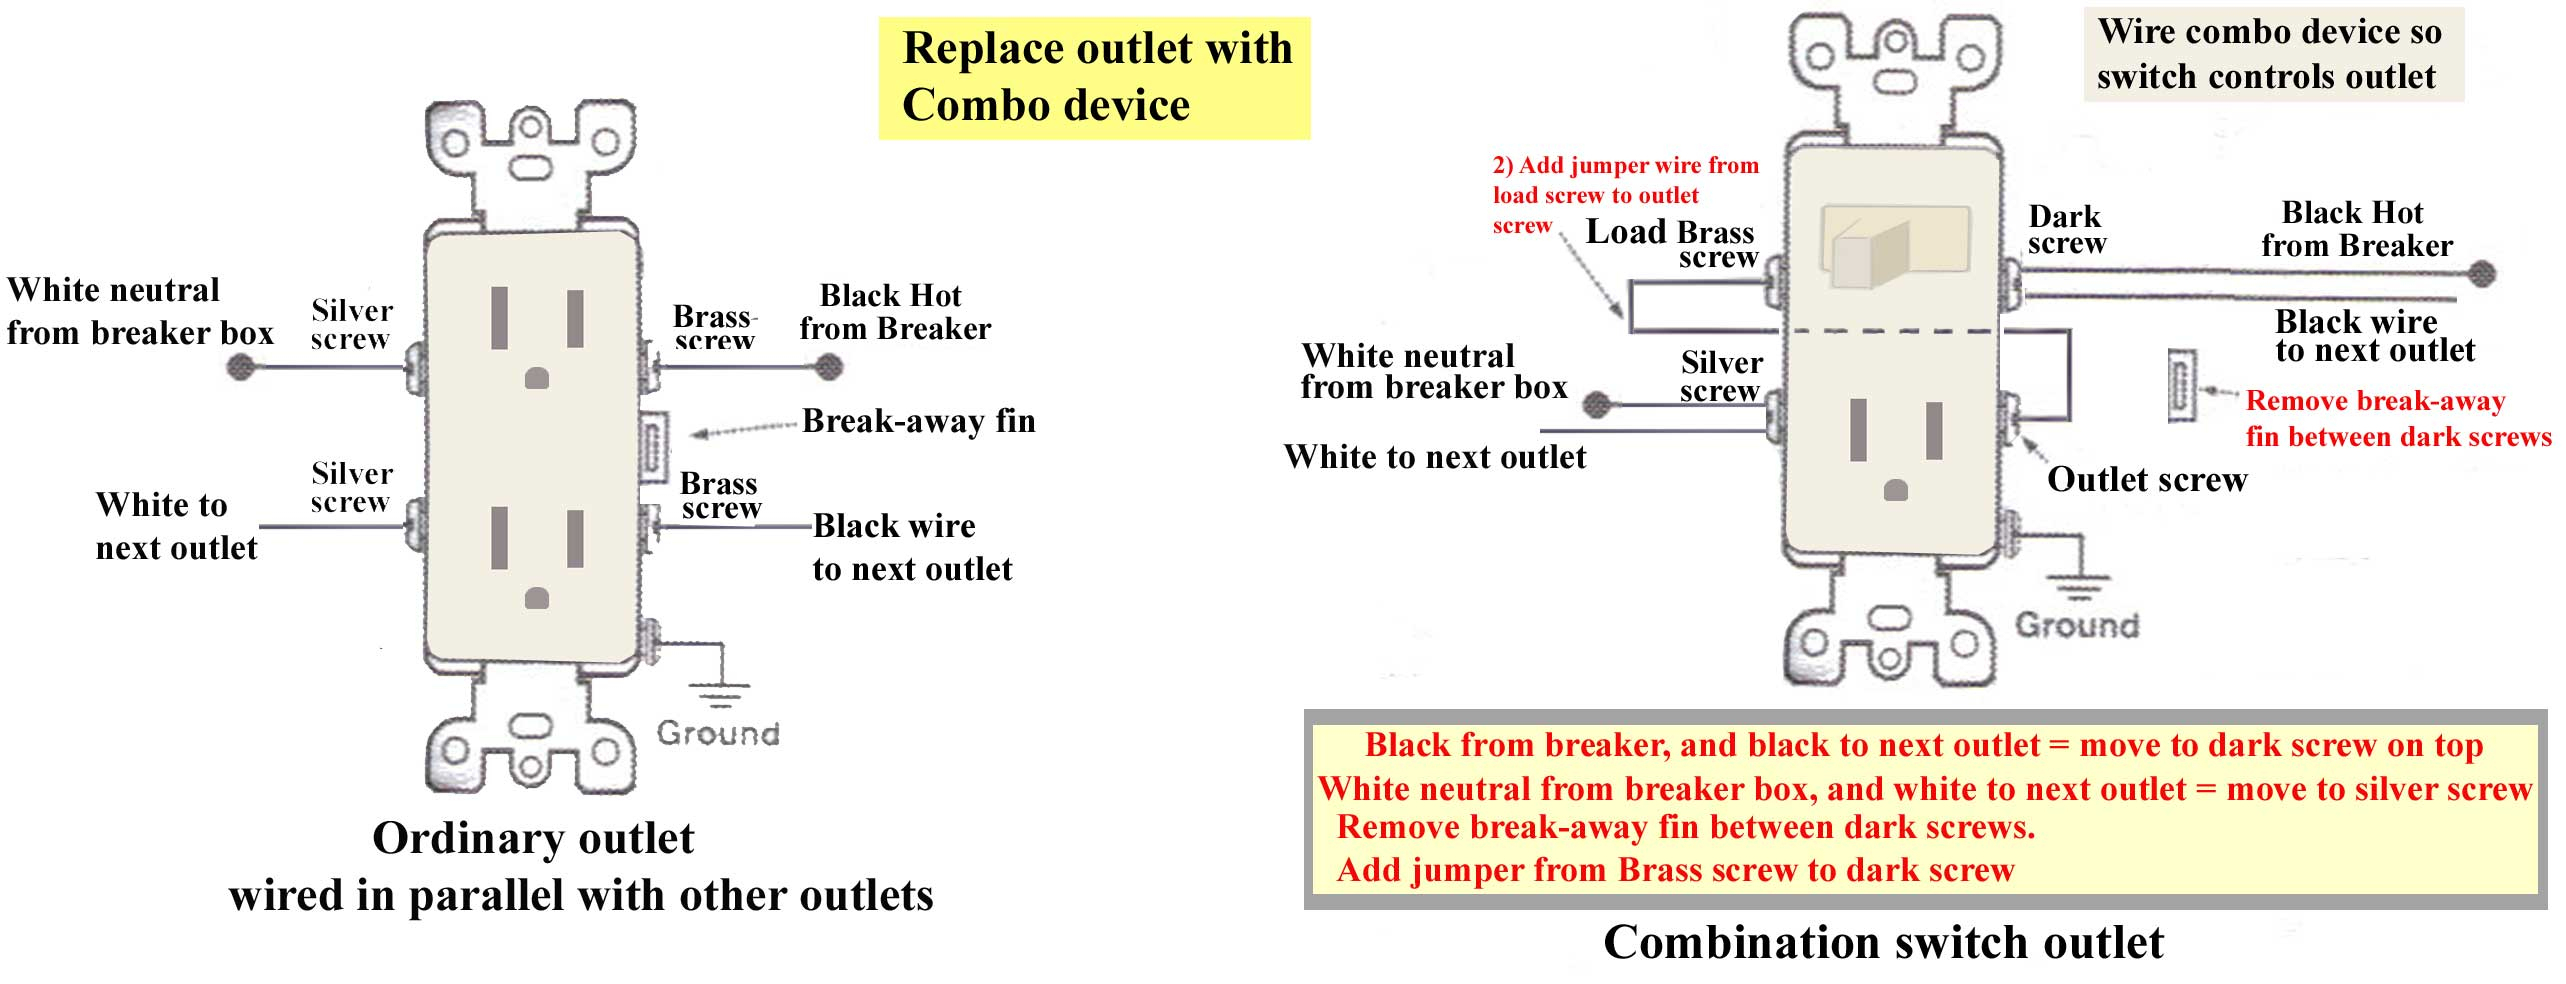 How To Wire Combination Switch Outlet - Switch Outlet Wiring Diagram